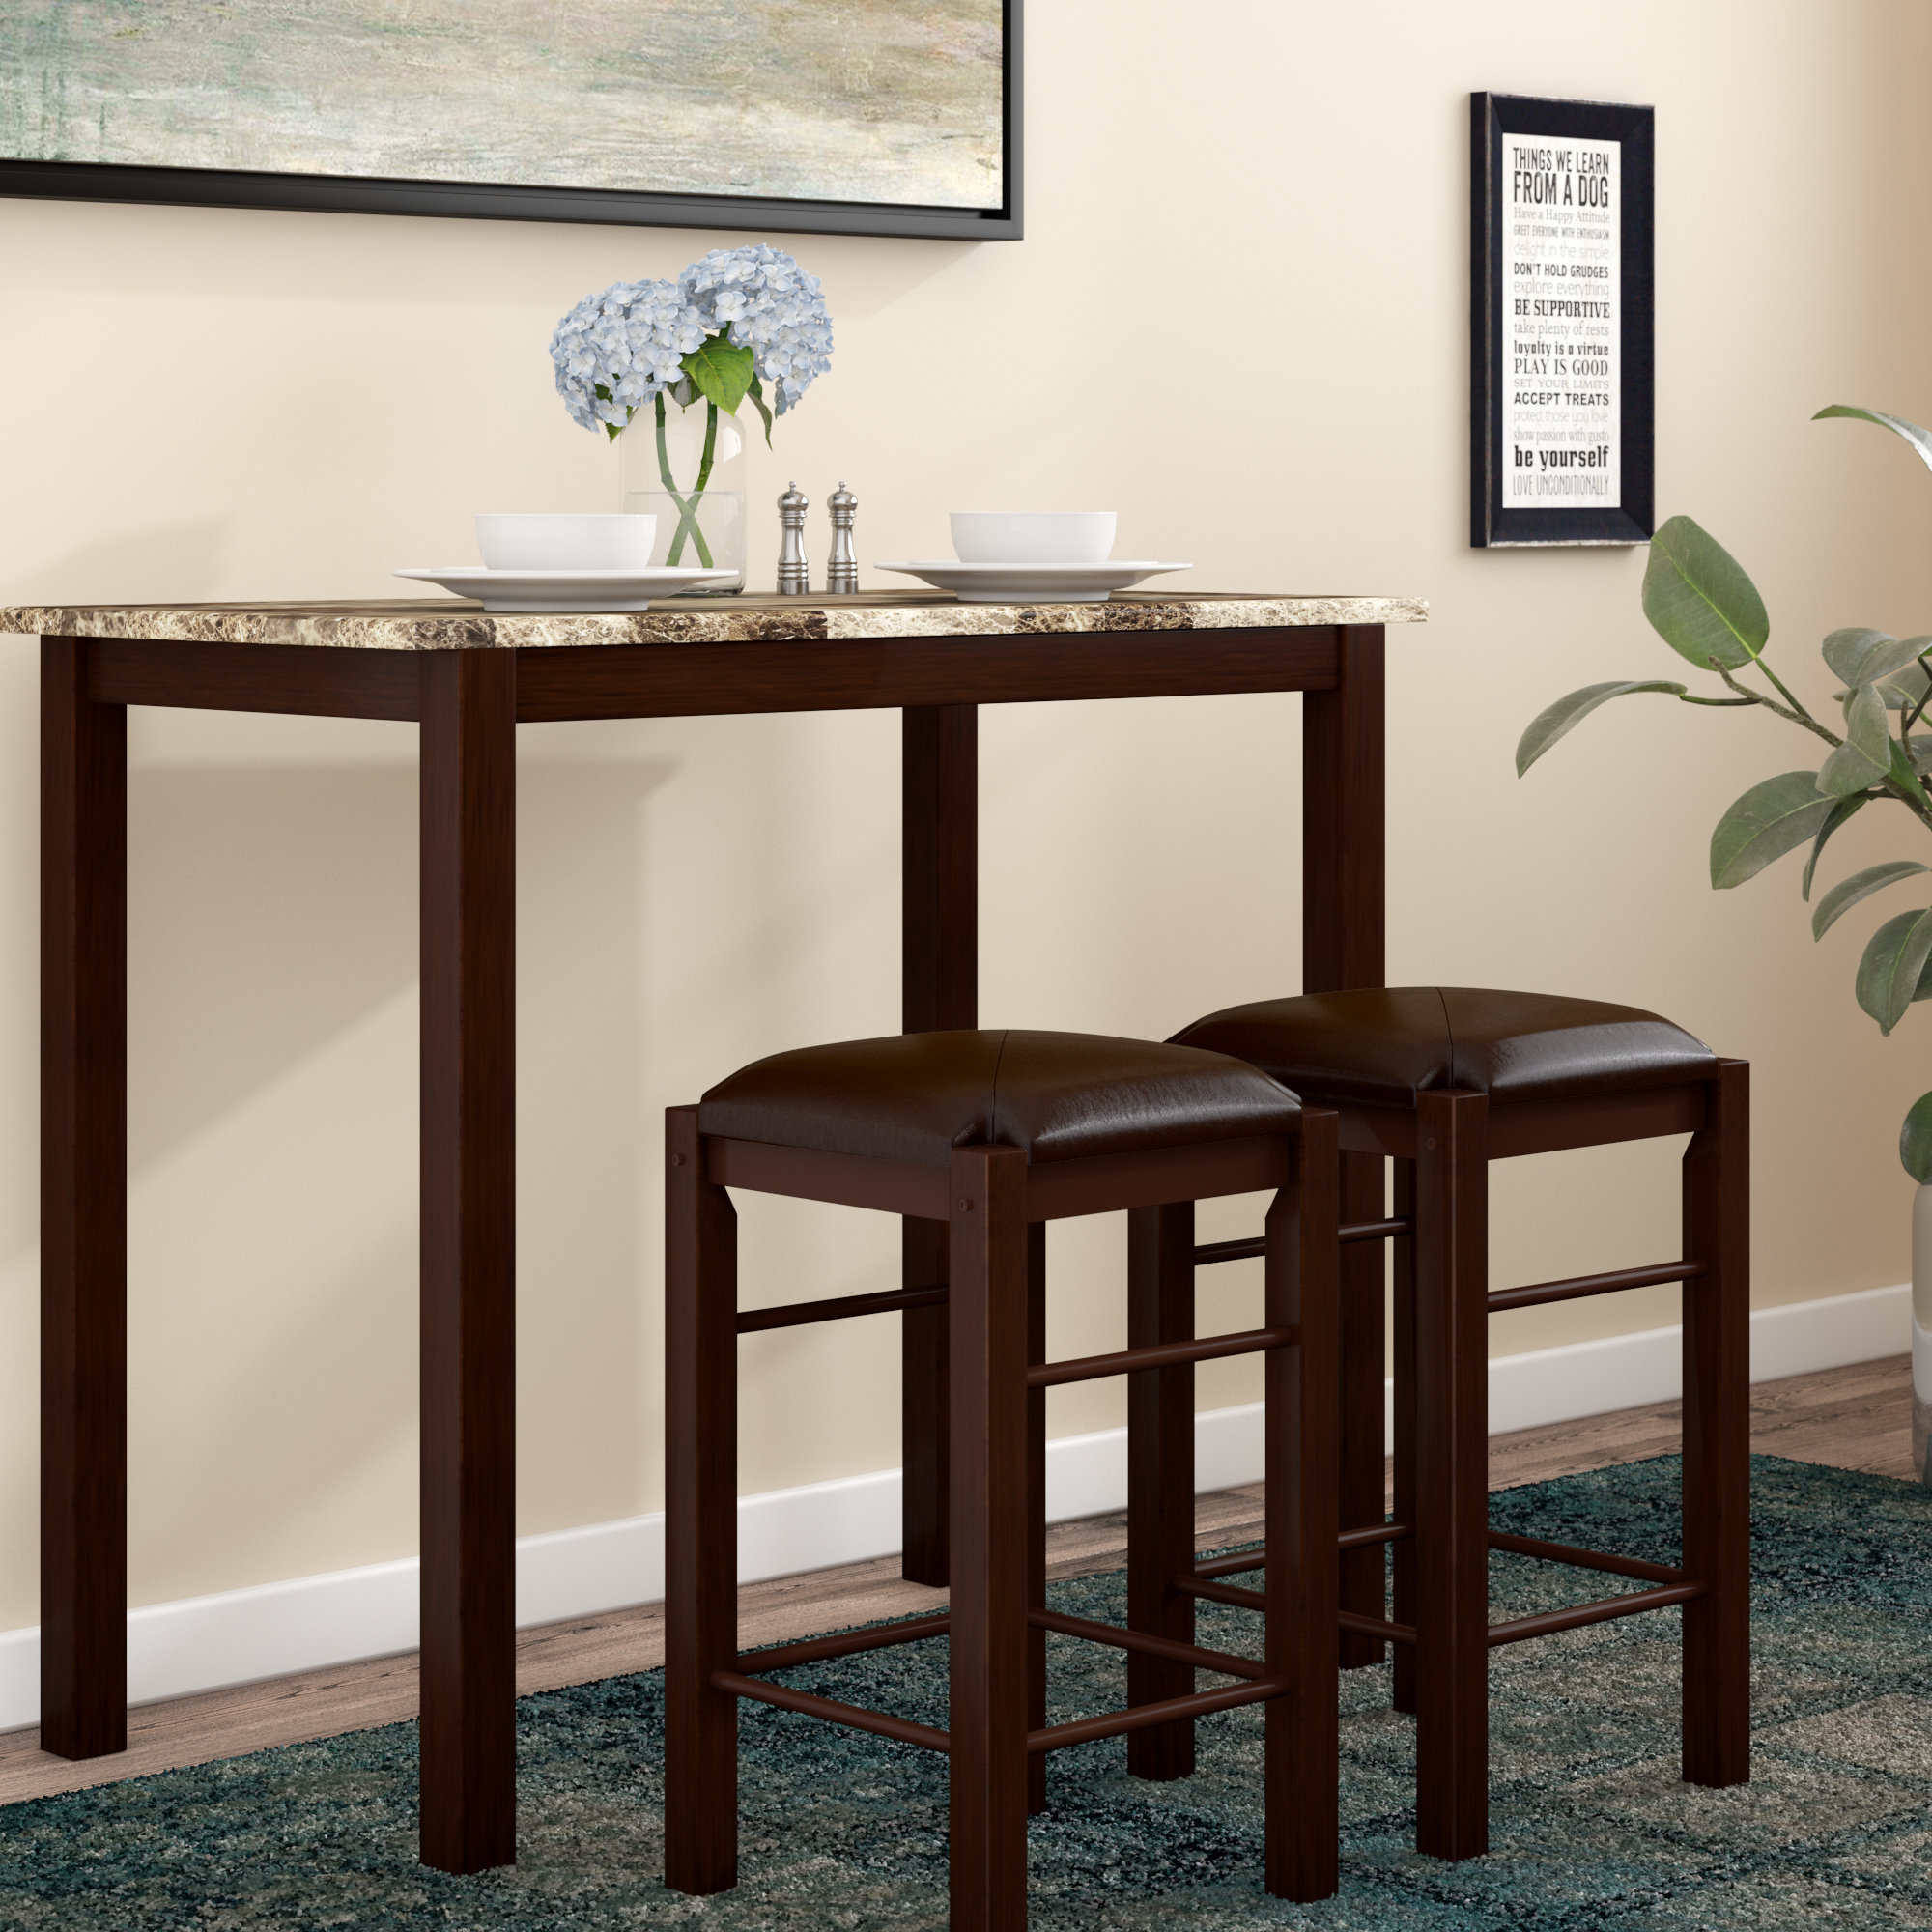 Penelope 3 Piece Counter Height Wood Dining Set Throughout Most Recent Lillard 3 Piece Breakfast Nook Dining Sets (Photo 7 of 20)